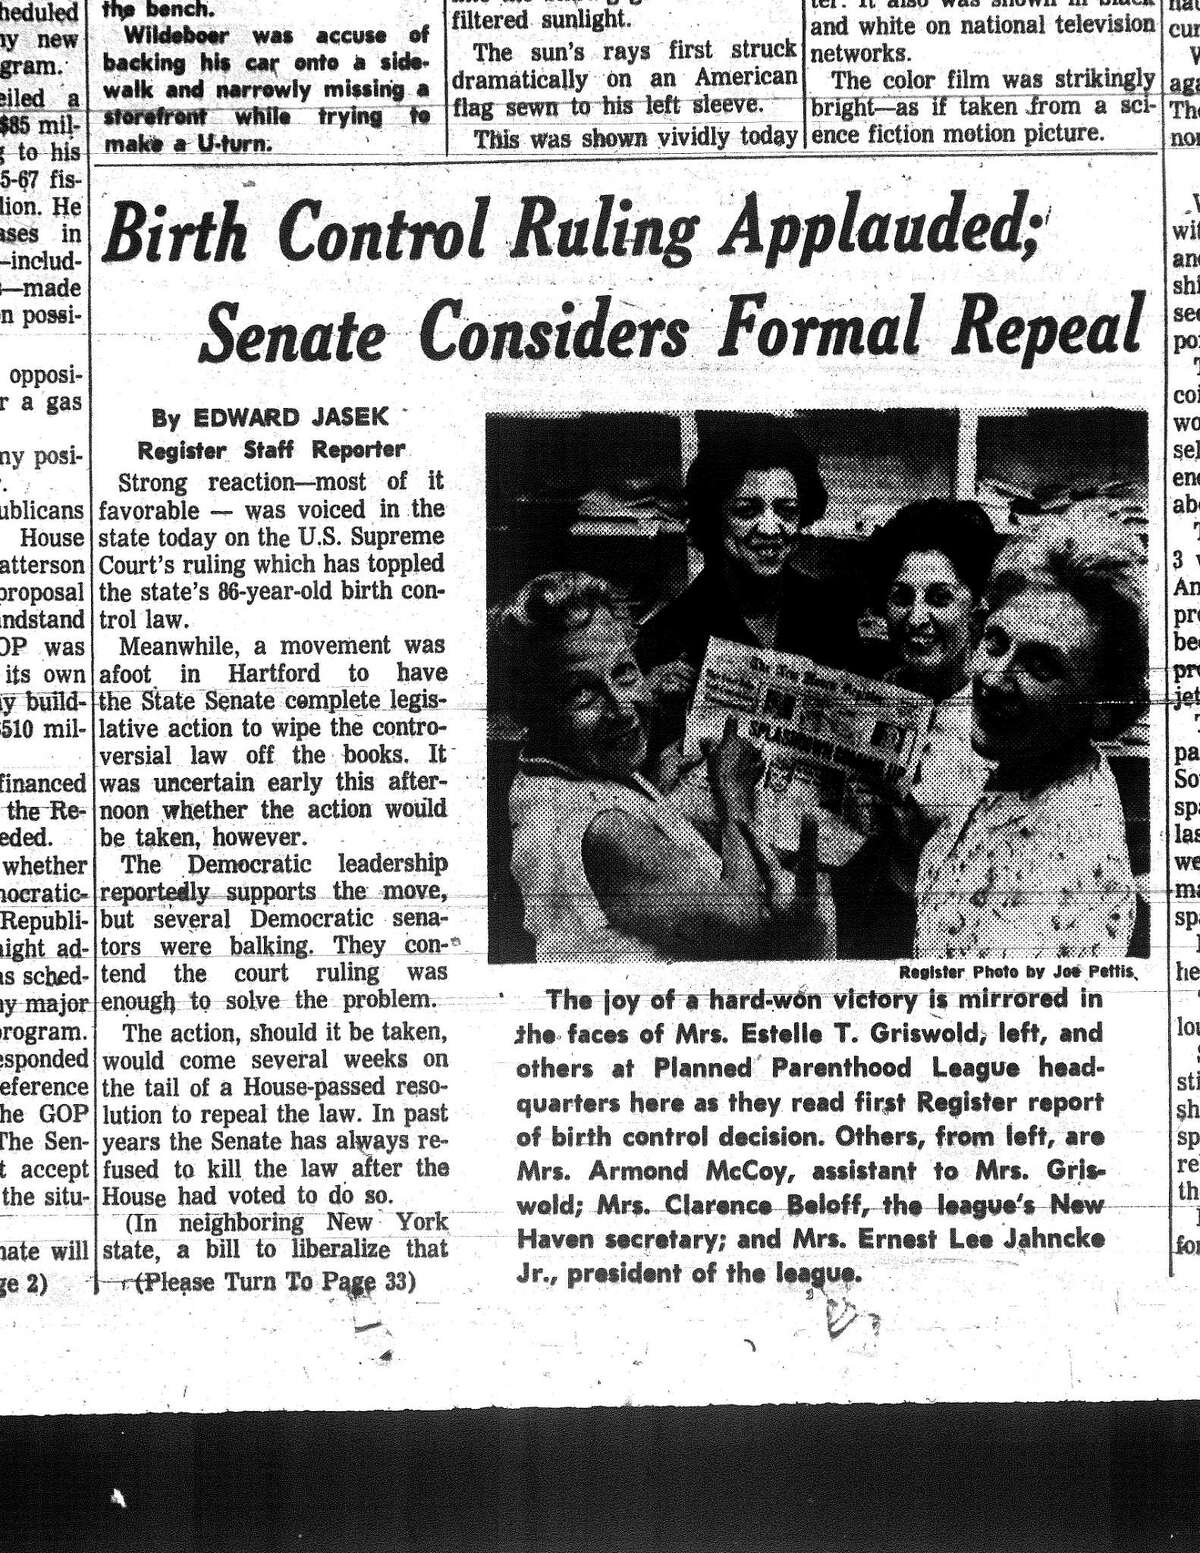 A clipping from the front page of the New Haven Register of June 8, 1965, shows Estelle Griswold, left, and Ernest Jahncke, president of the Planned Parenthood League of Connecticut, celebrating the Supreme Court's decision of Griswold v. Connecticut.